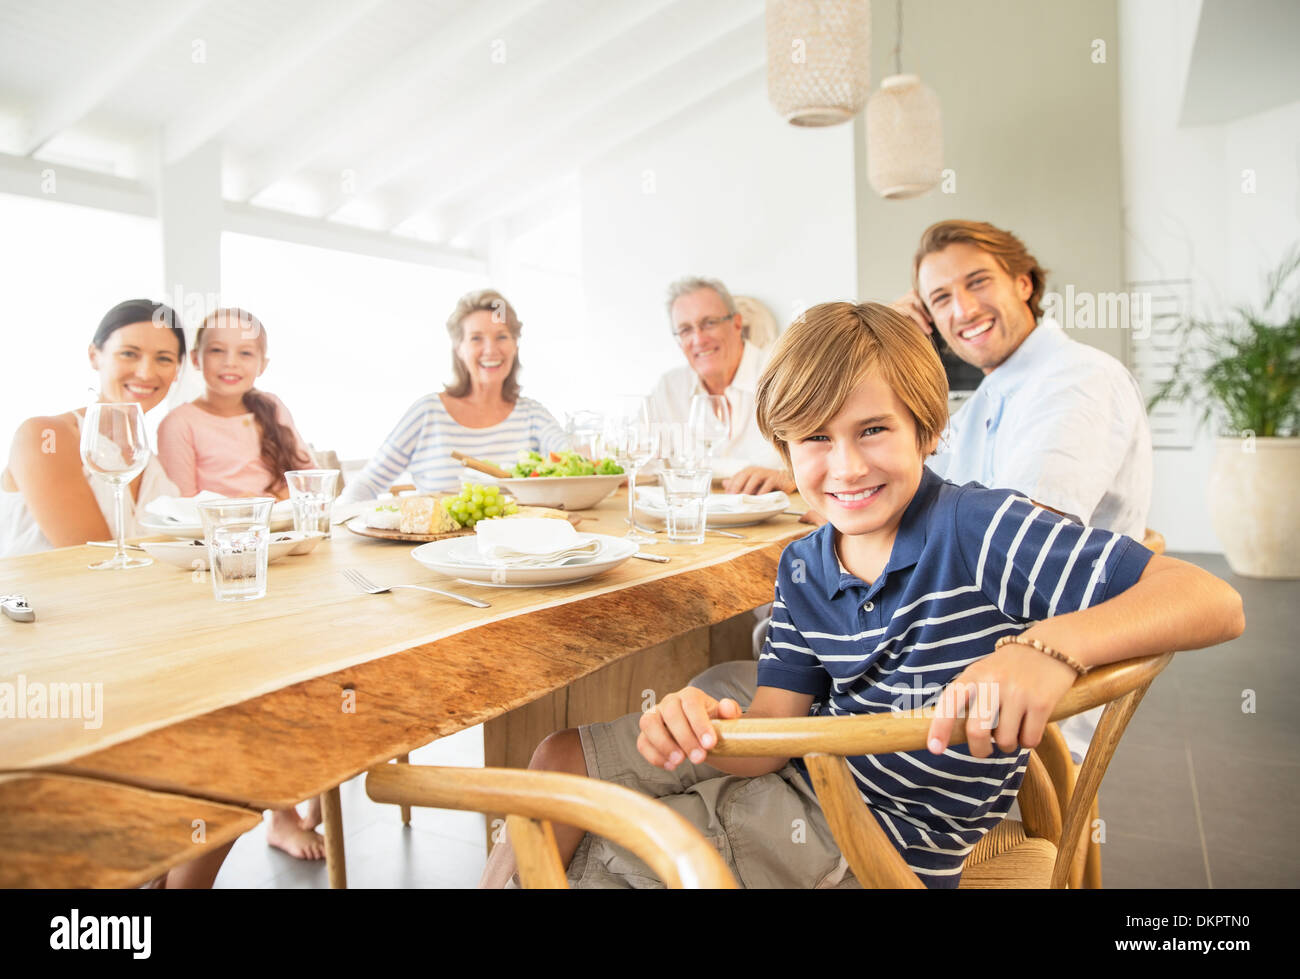 Family smiling together at table - Stock Image